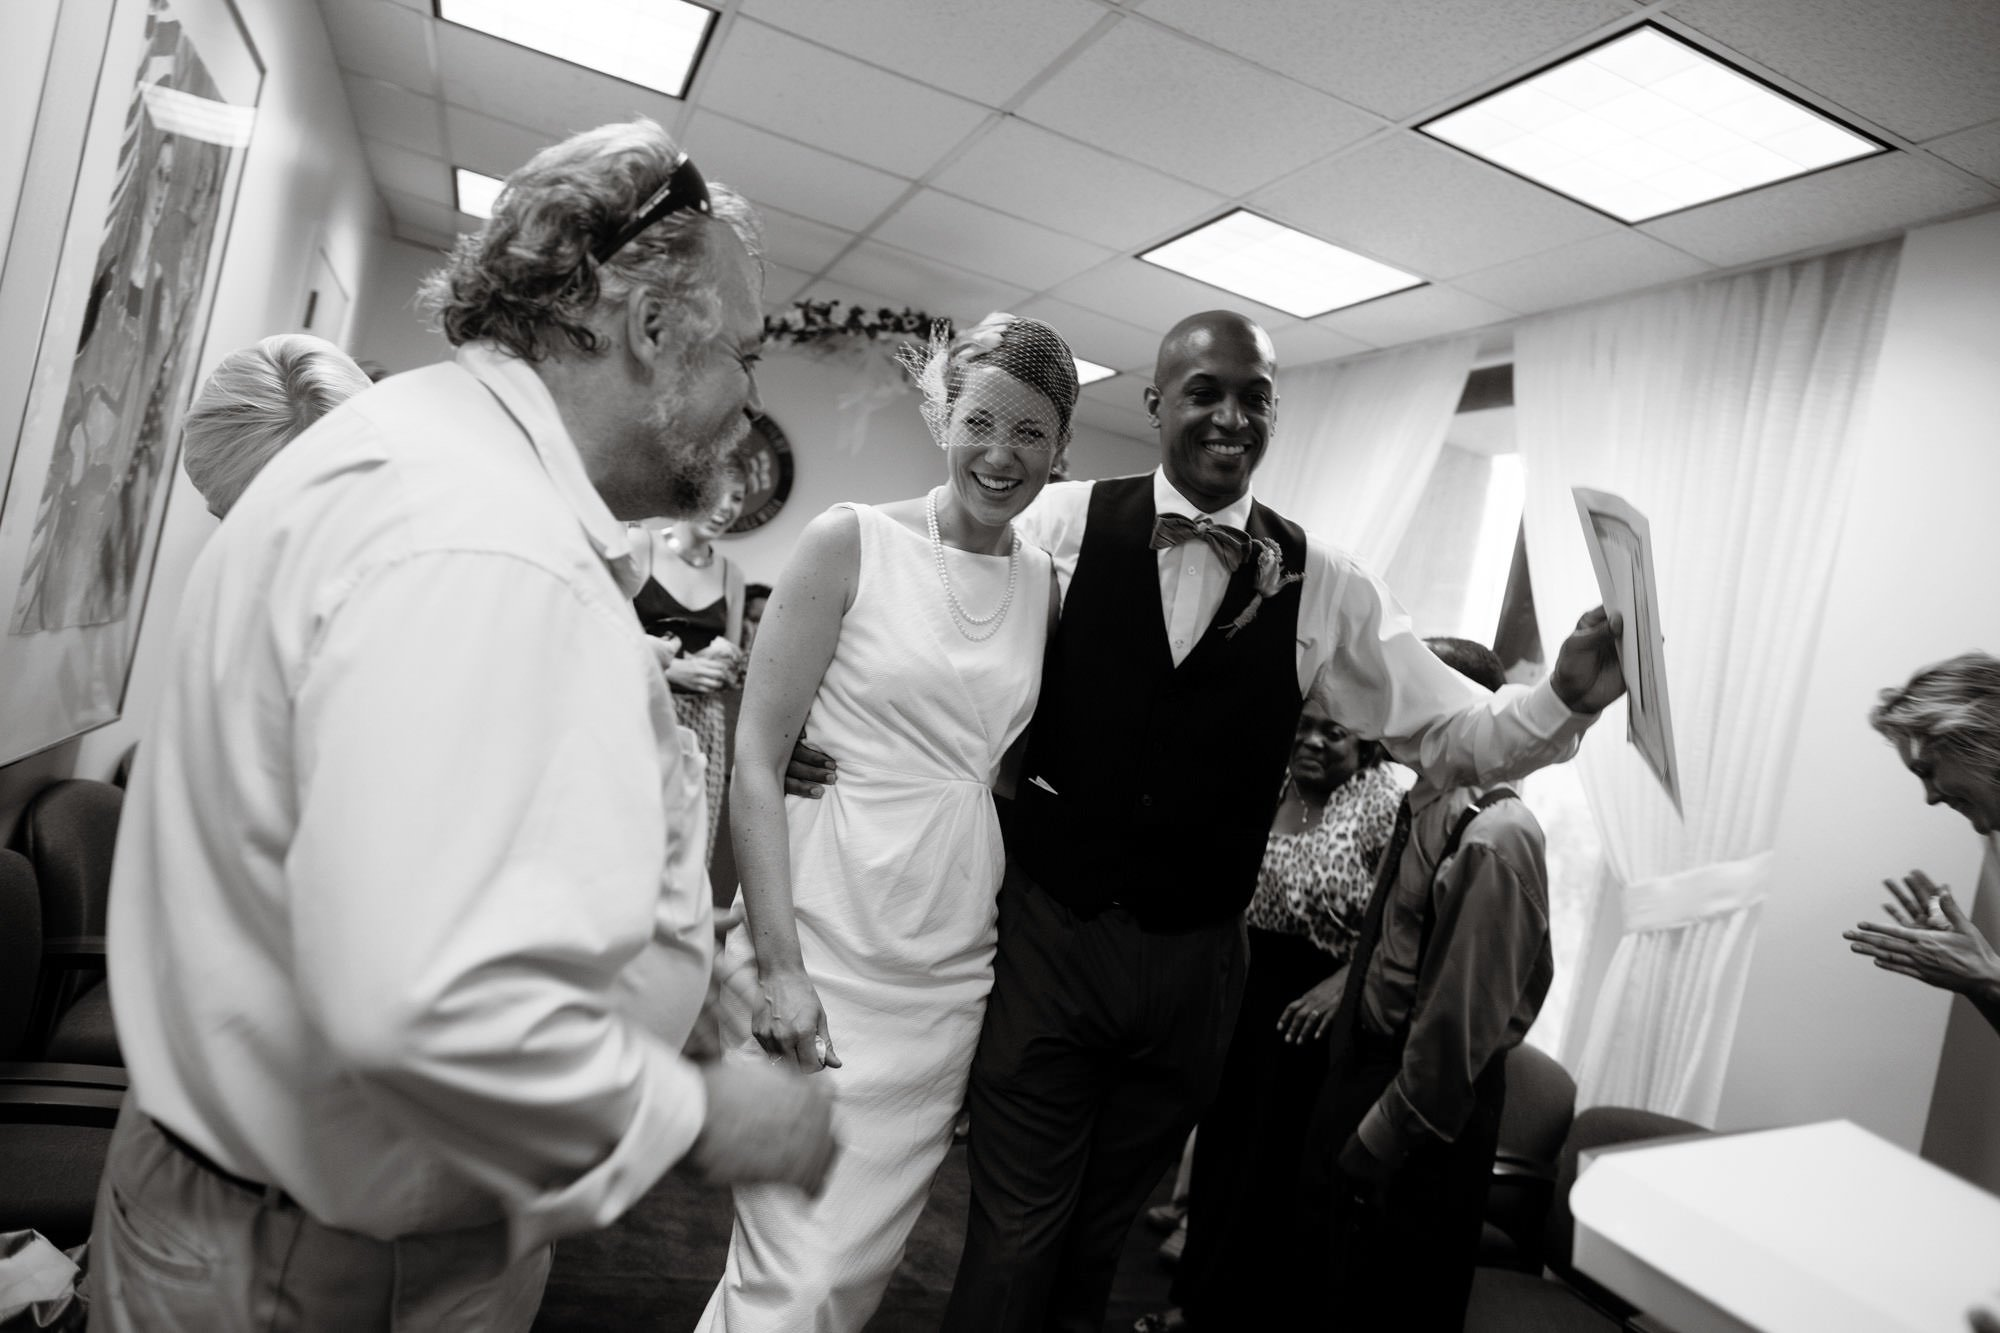 The couple processes down the aisle as a married couple following their DC Courthouse wedding ceremony.